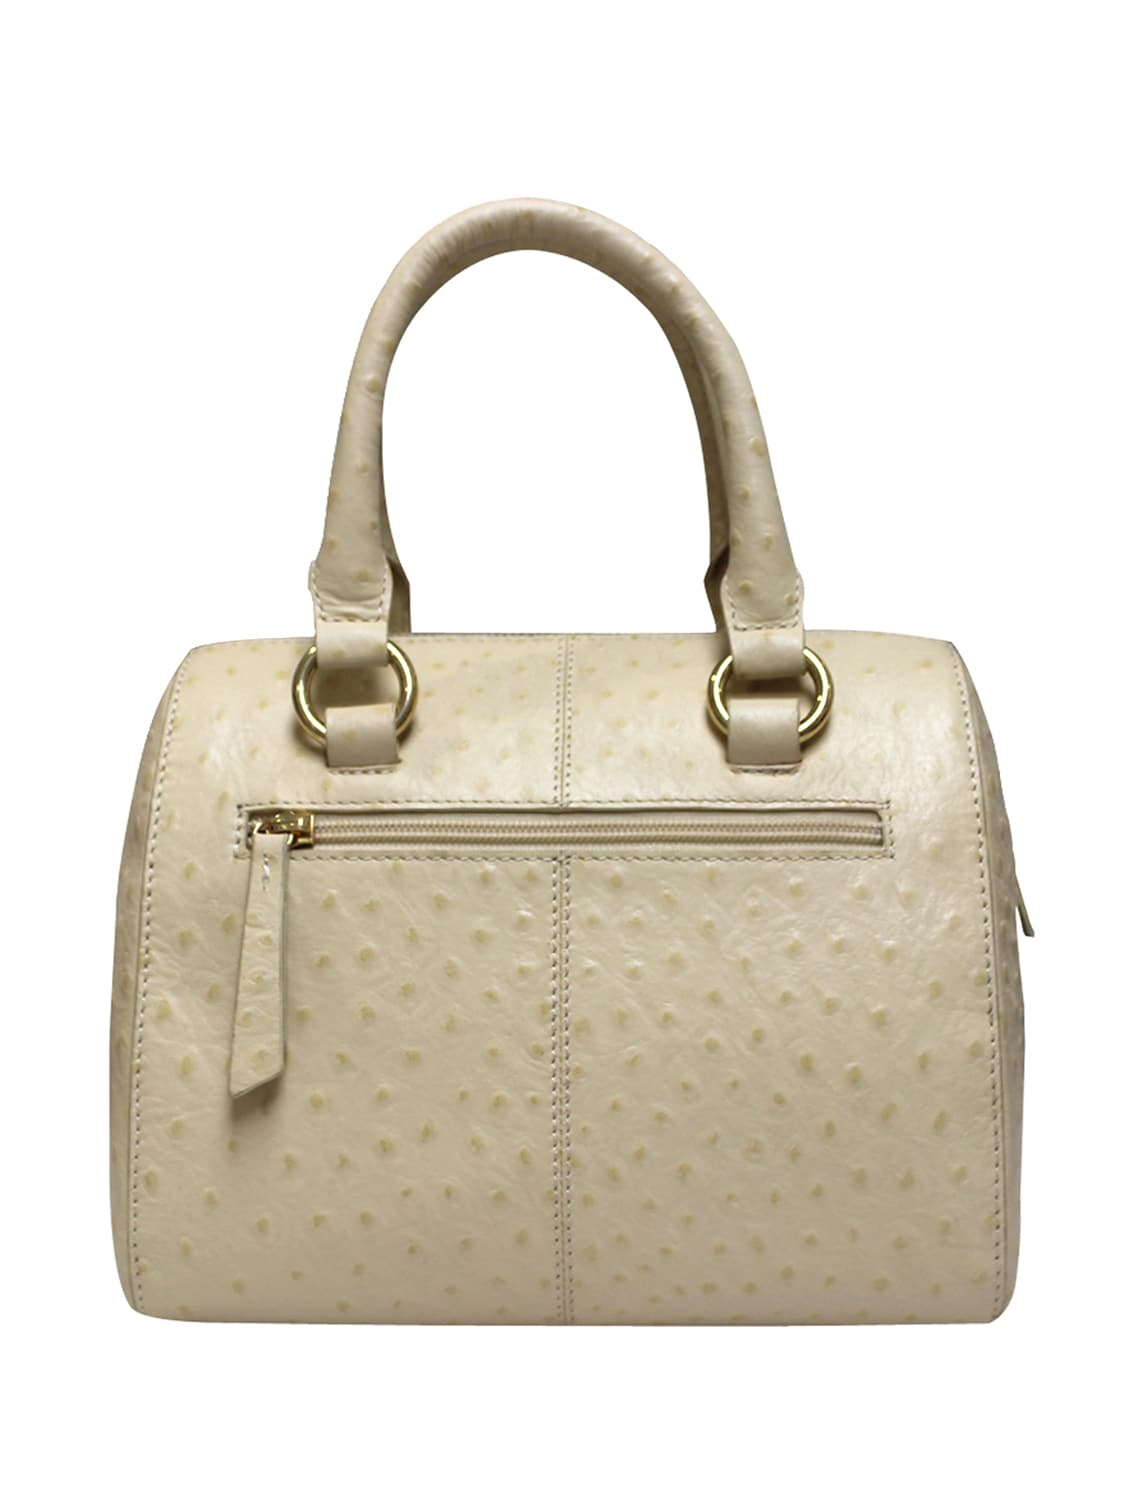 Cream Leather Structured Handbag By La Roma Italia Online Ping For Handbags In India 13656069